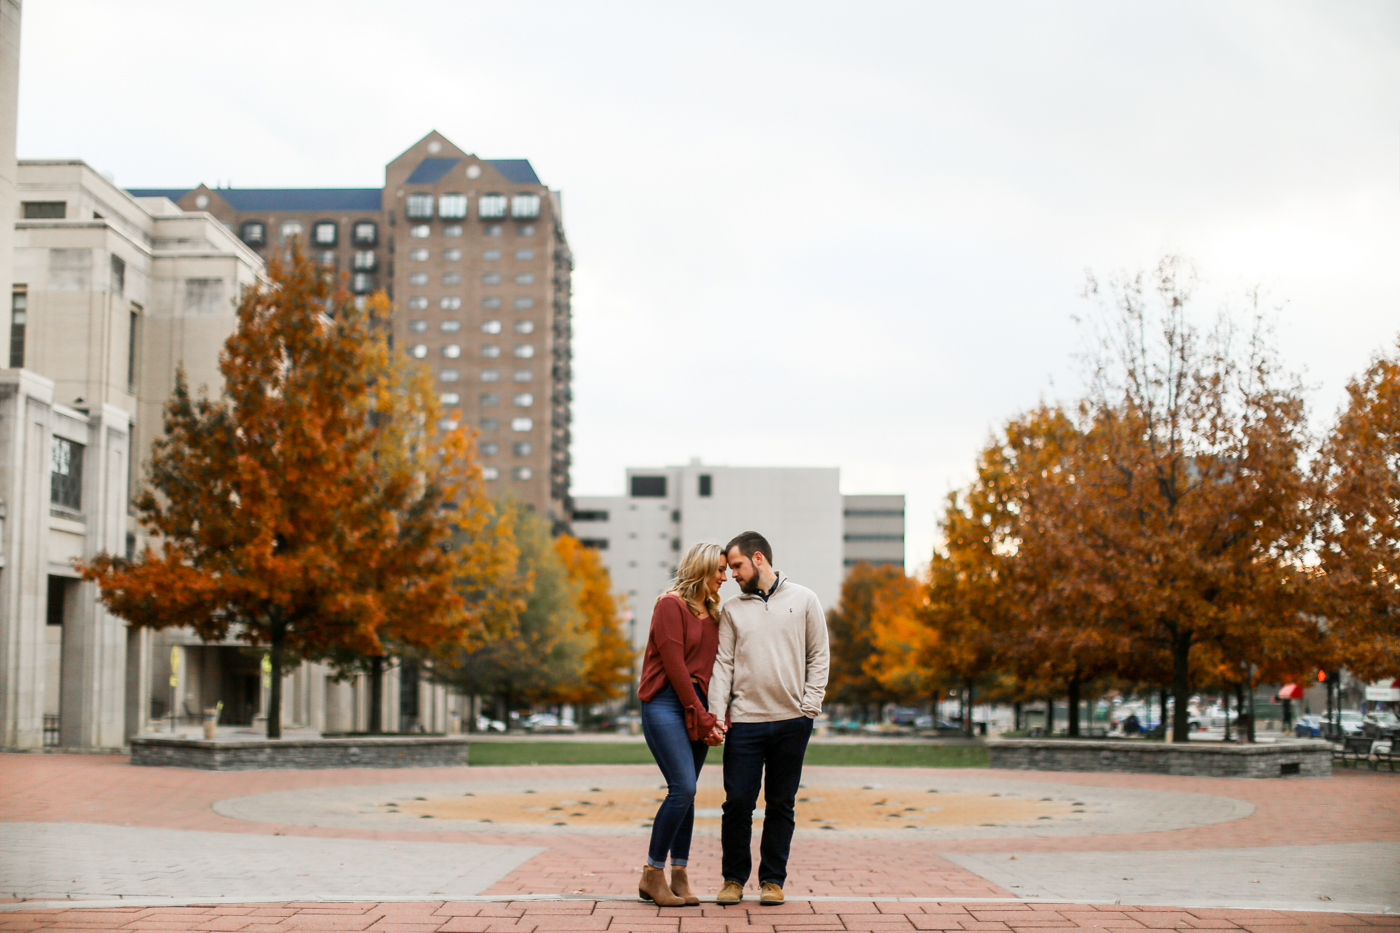 Downtown-Lexington-Mural-Prhtbn-Dog-Engagement-Wedding-Photography-18.jpg